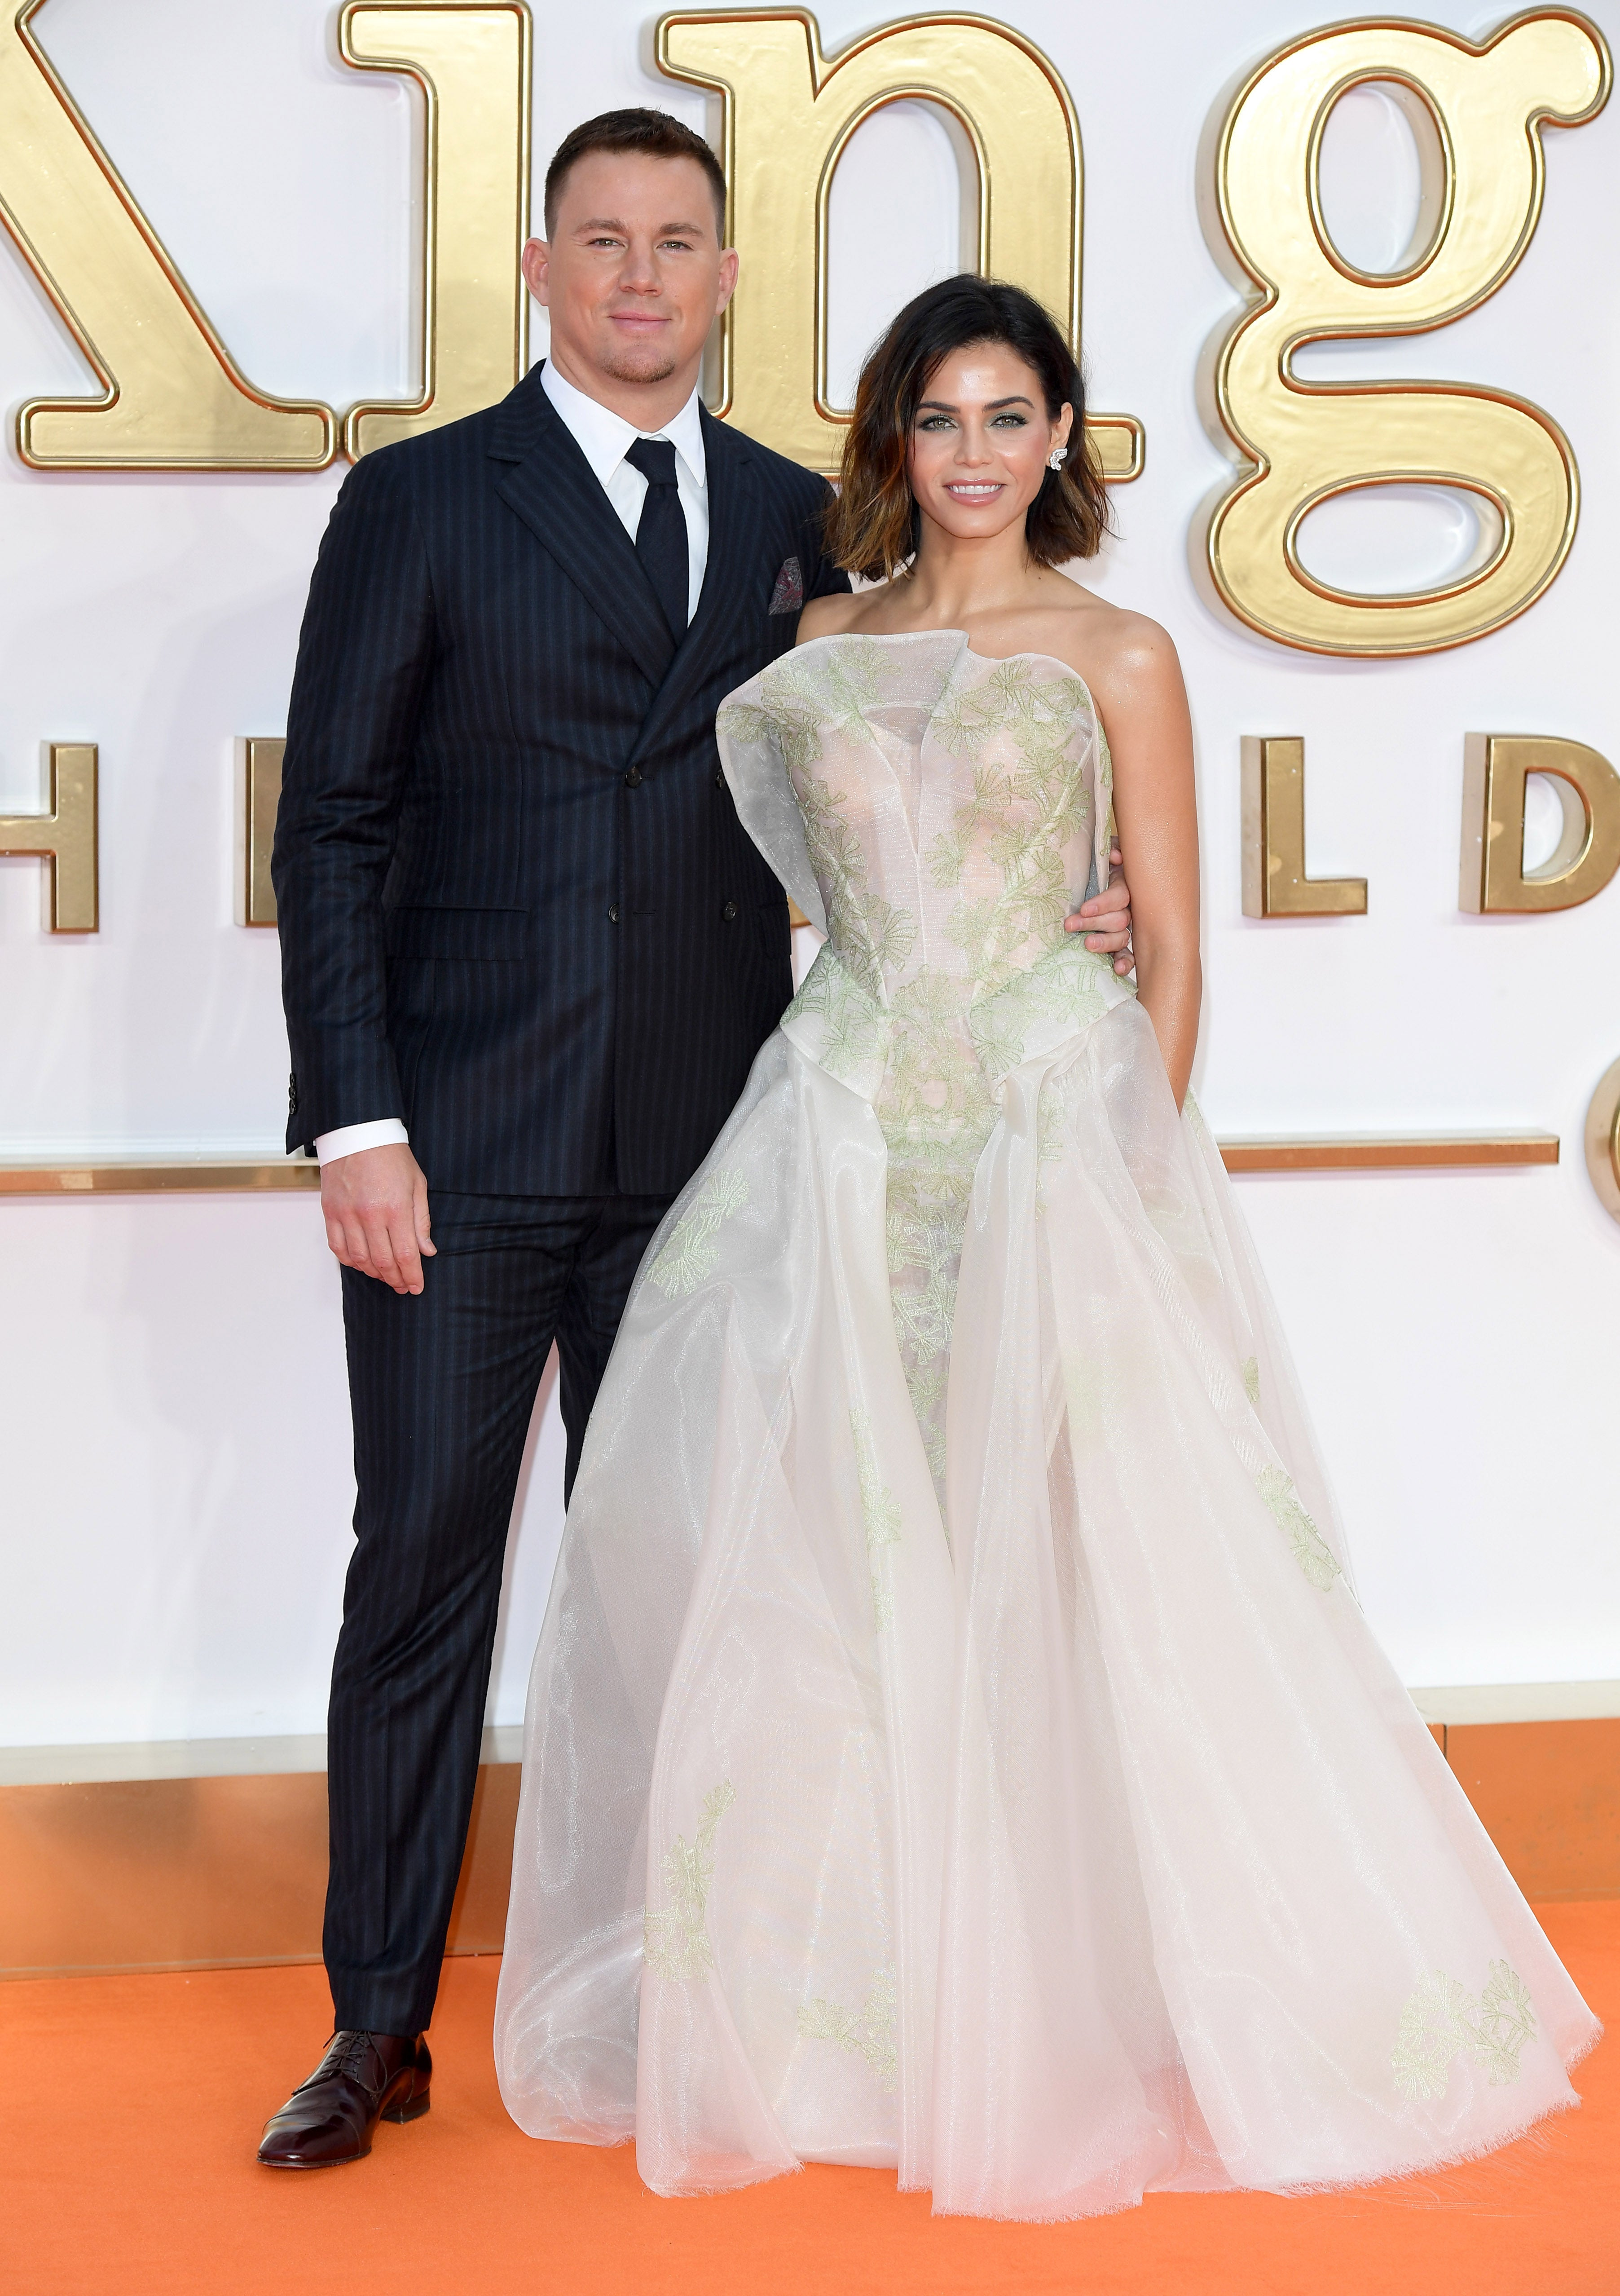 EXCLUSIVE Channing Tatum Praises Wife Jennas Booty As She Stuns At Kingsman The Golden Circle Premiere